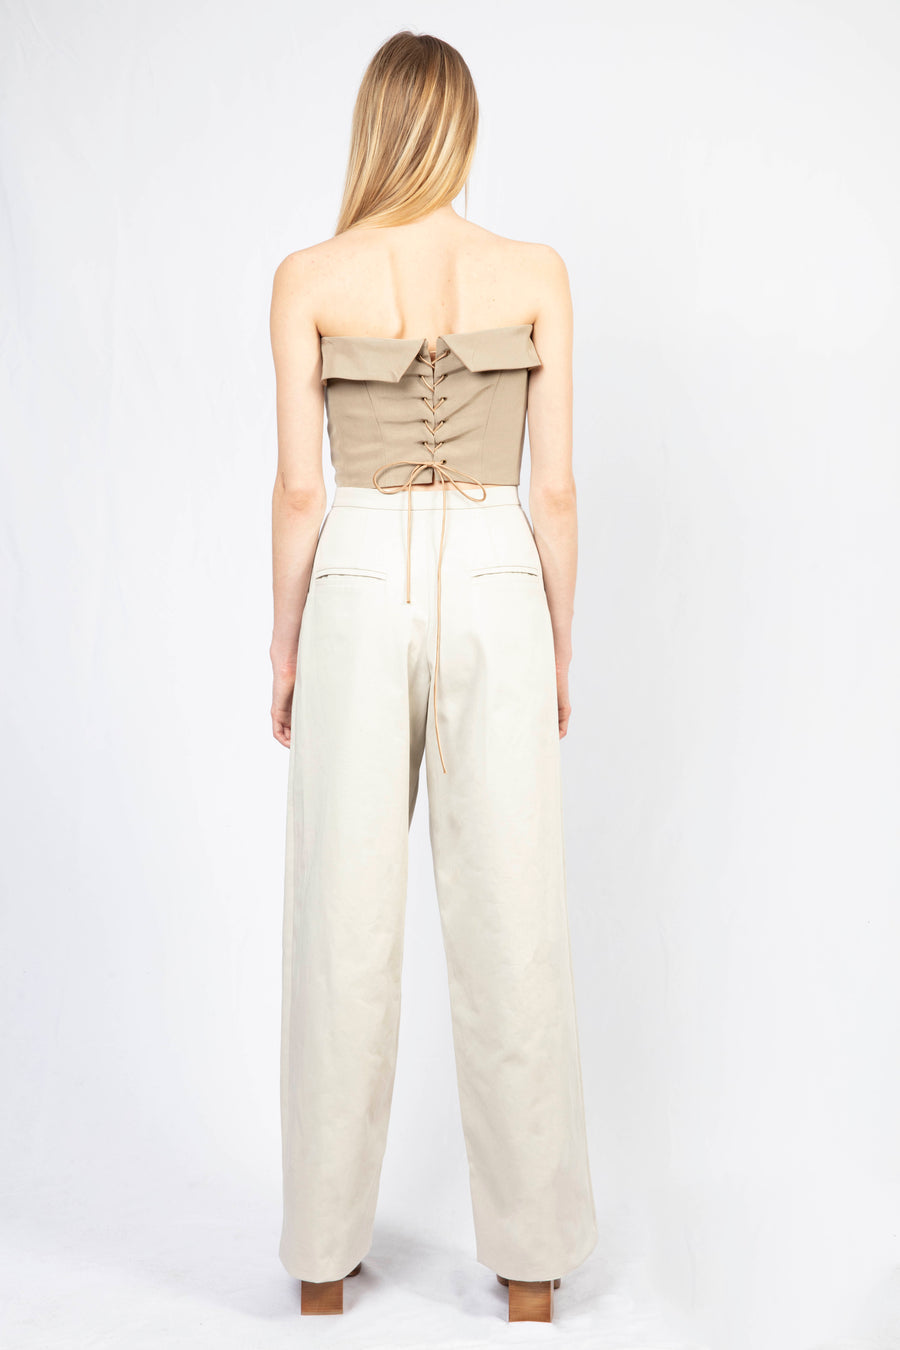 High-waisted tailored pants/Bustier Top